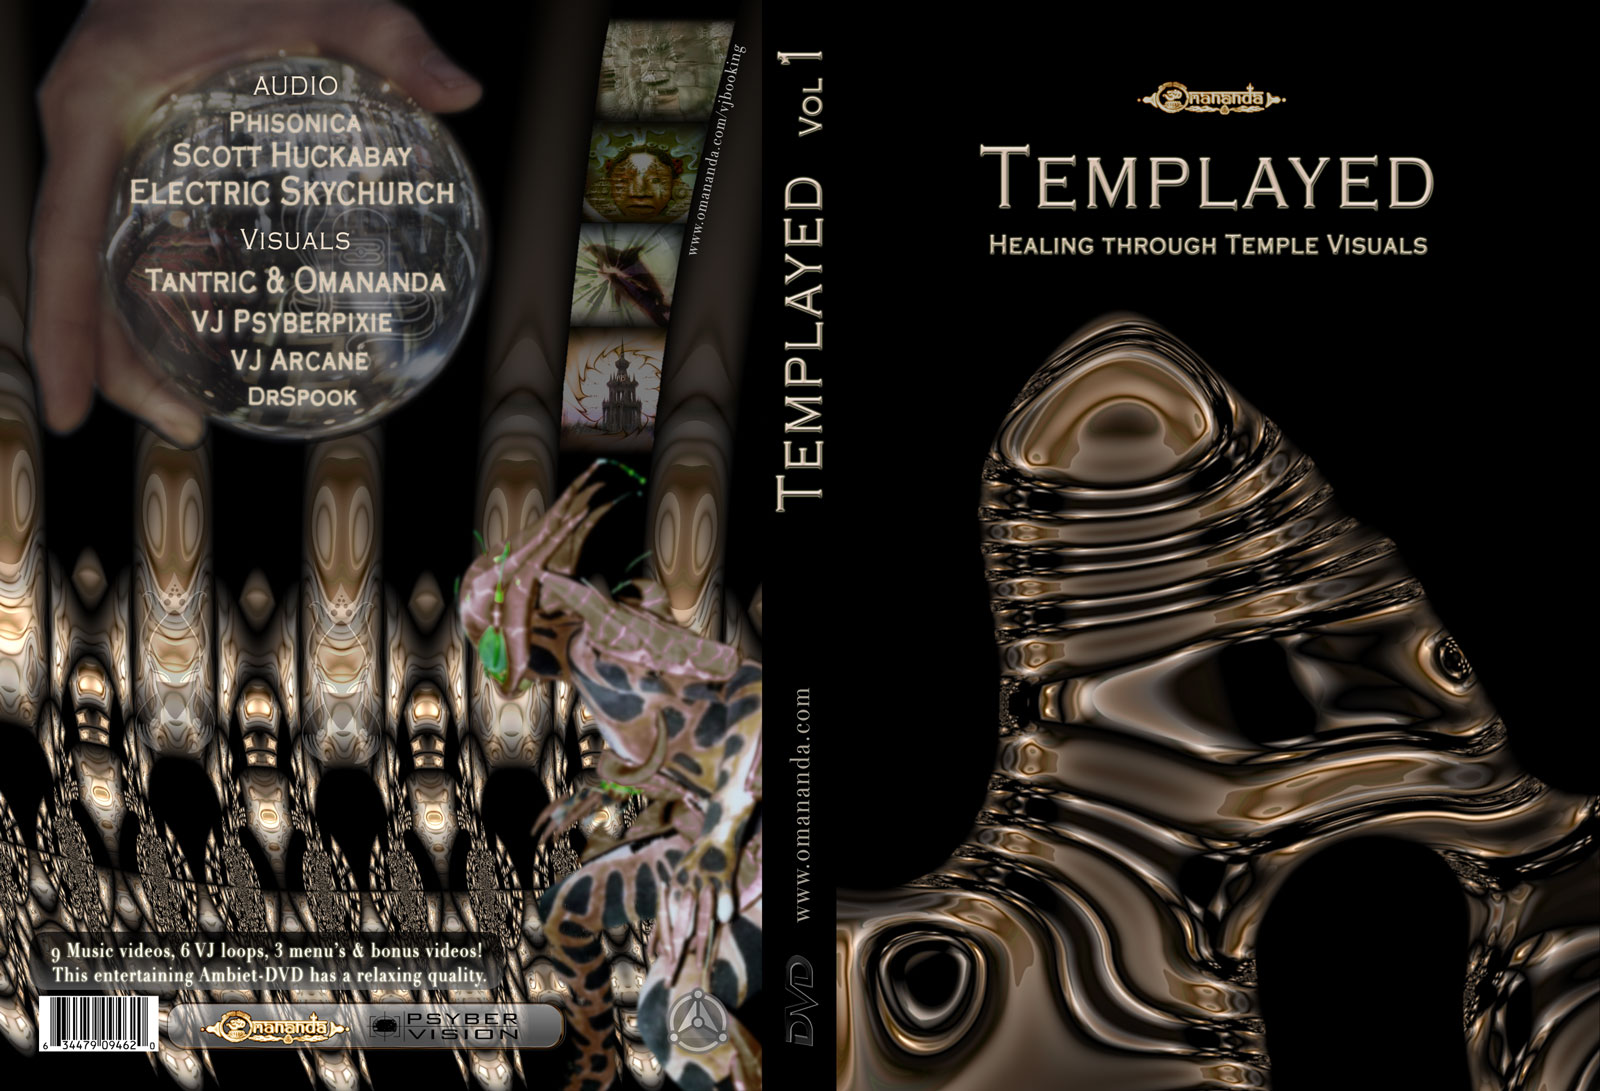 Templayed_DVDCover_final